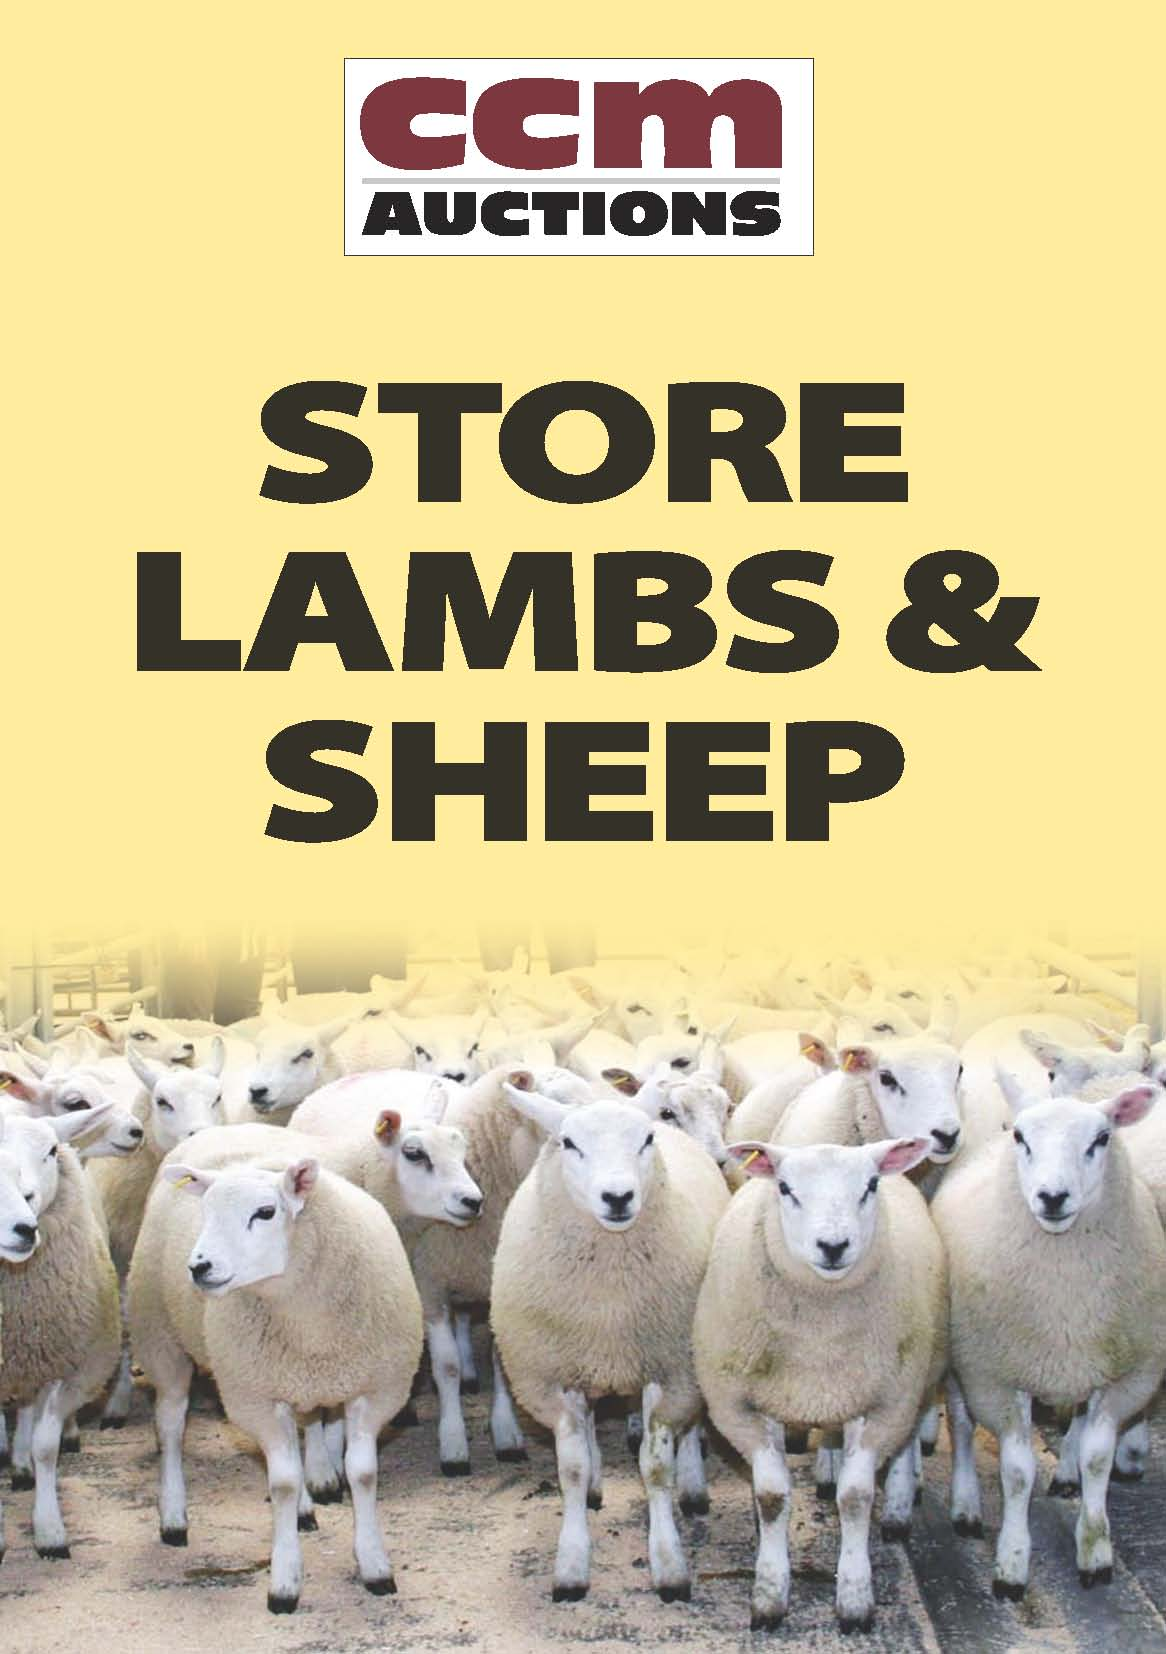 STORE LAMBS & BREEDING SHEEP - WEDNESDAY 10TH FEBRUARY 2021